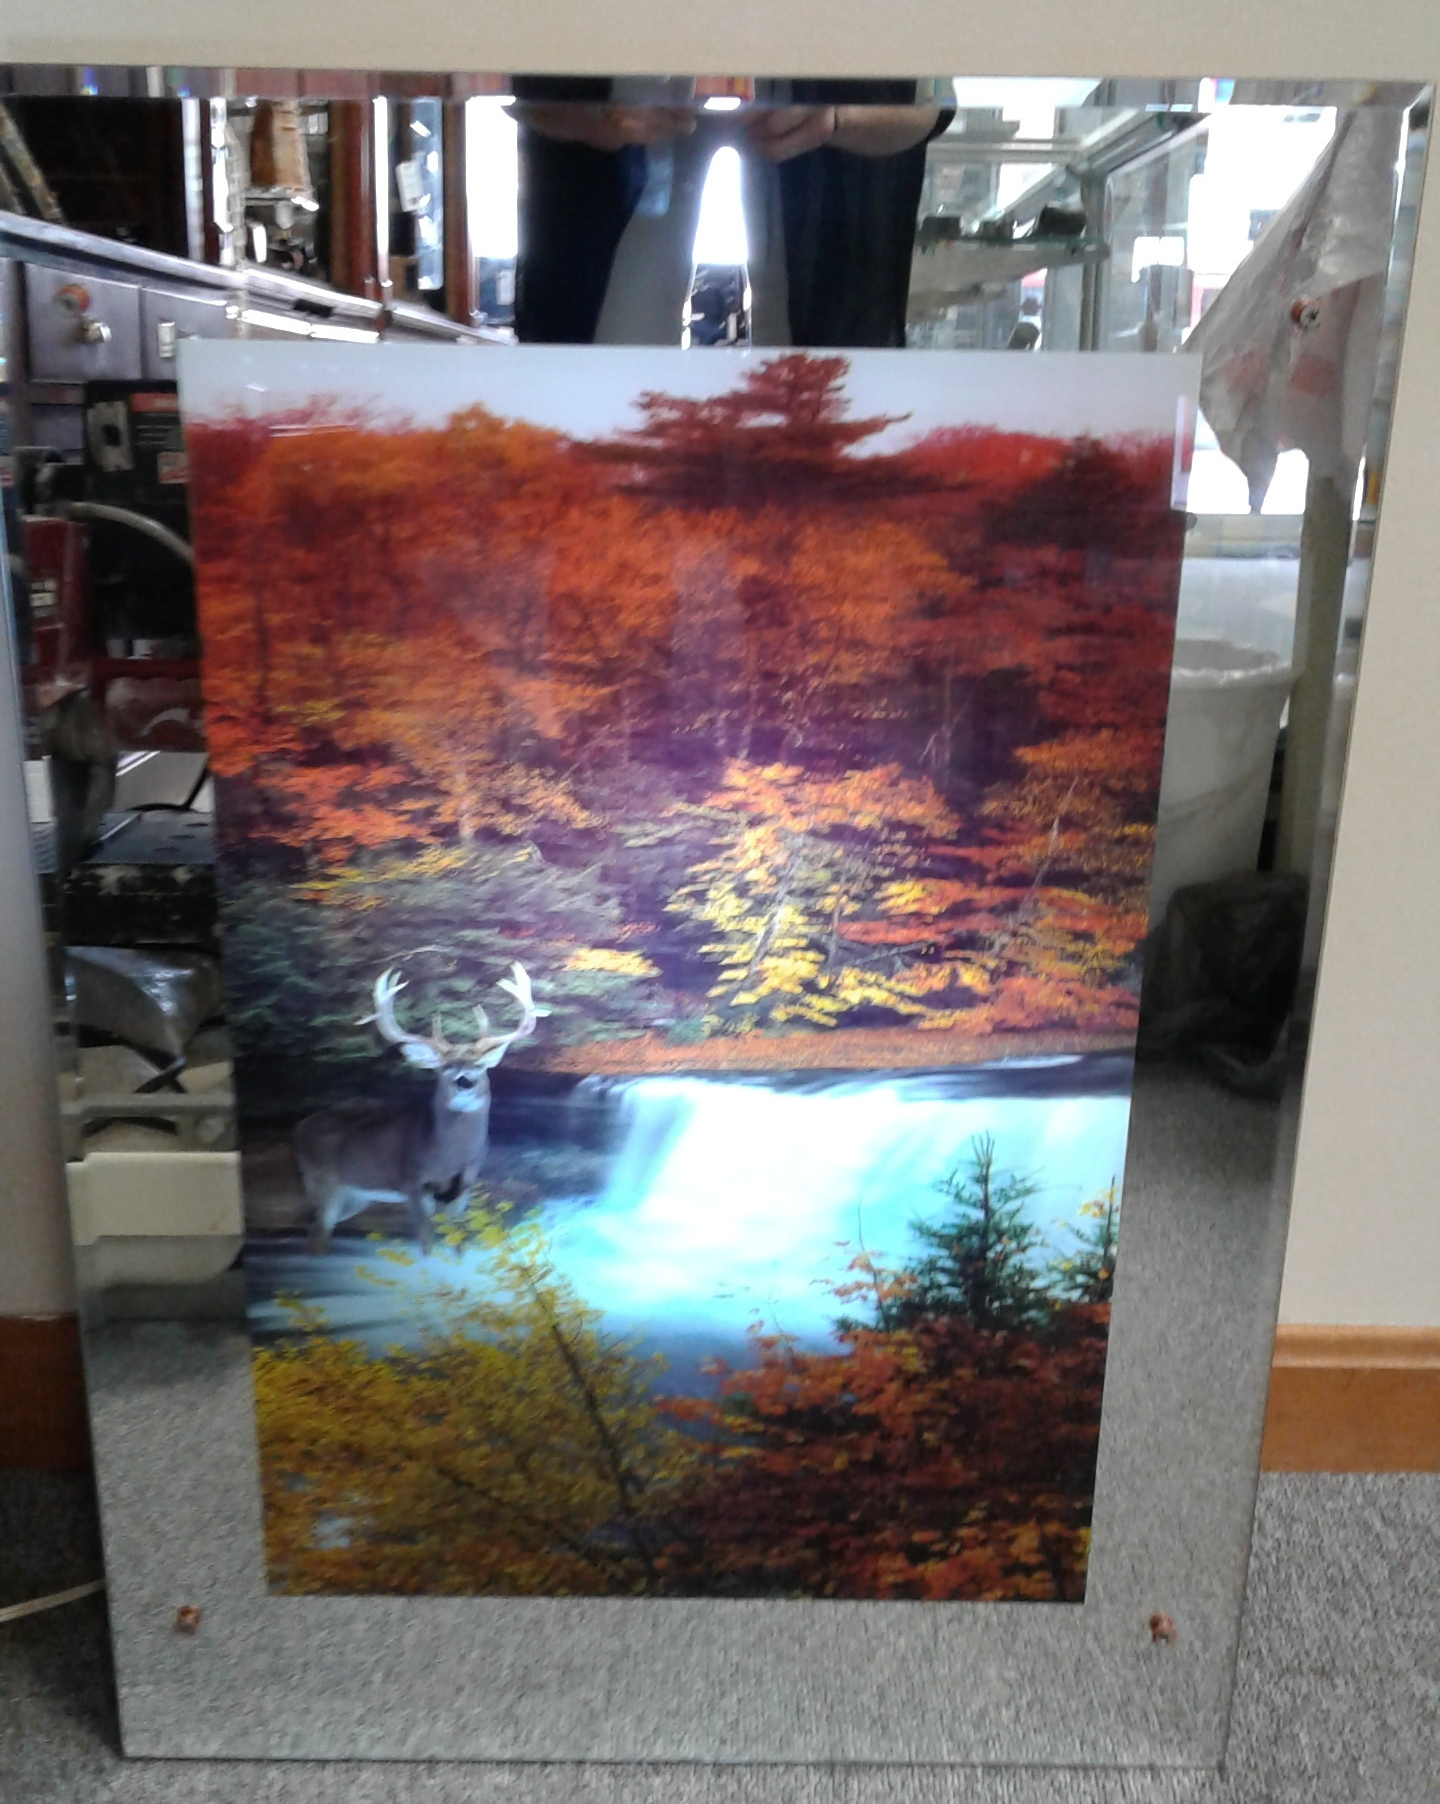 MIRROR MOVING WATERFALL BACKLIT PICTURE WITH DEER SCENE